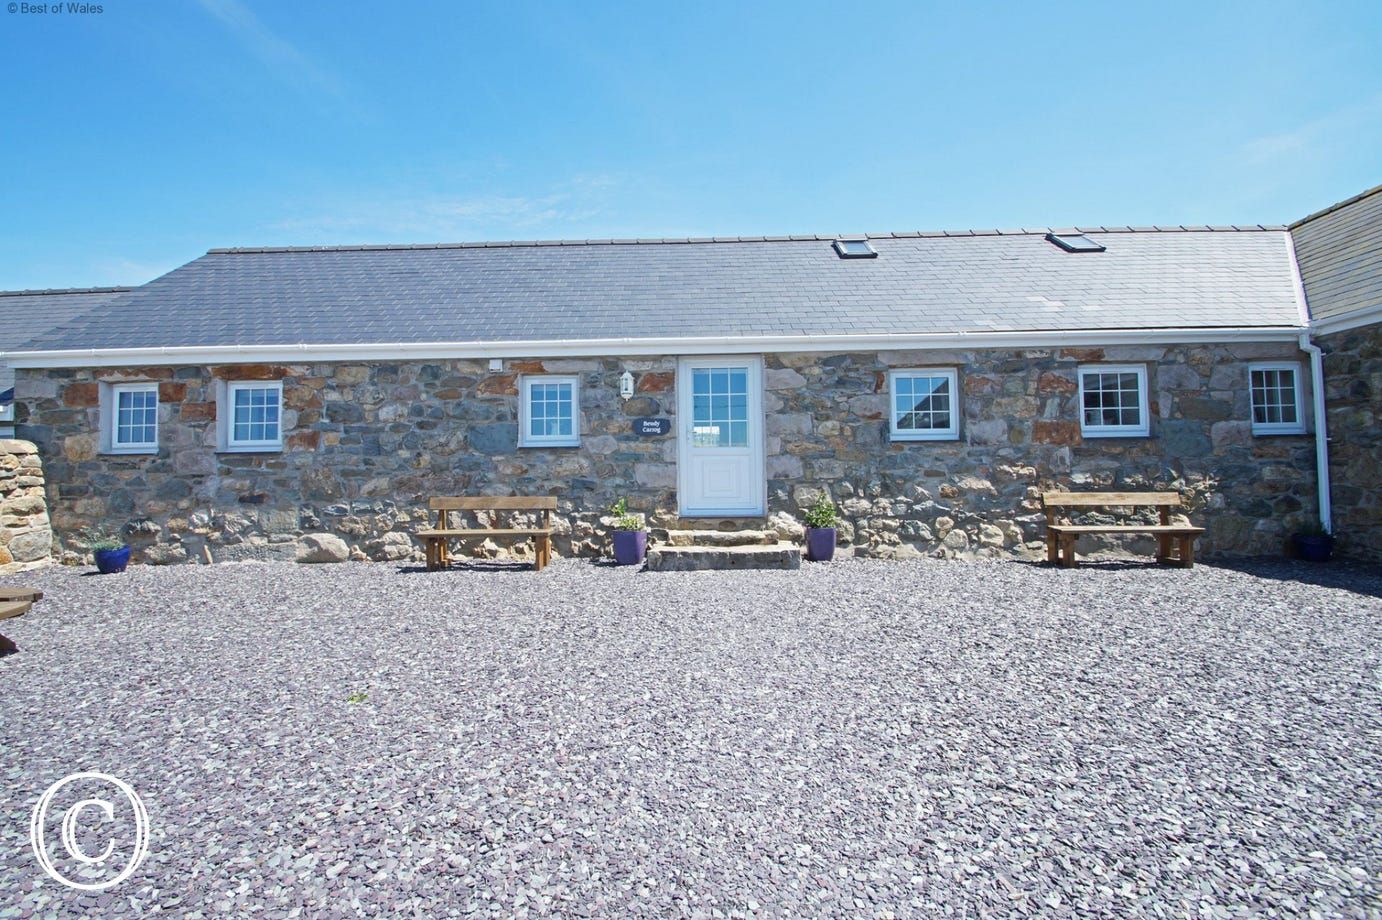 A 5 star holiday cottage with sea view on the Llyn Peninsula